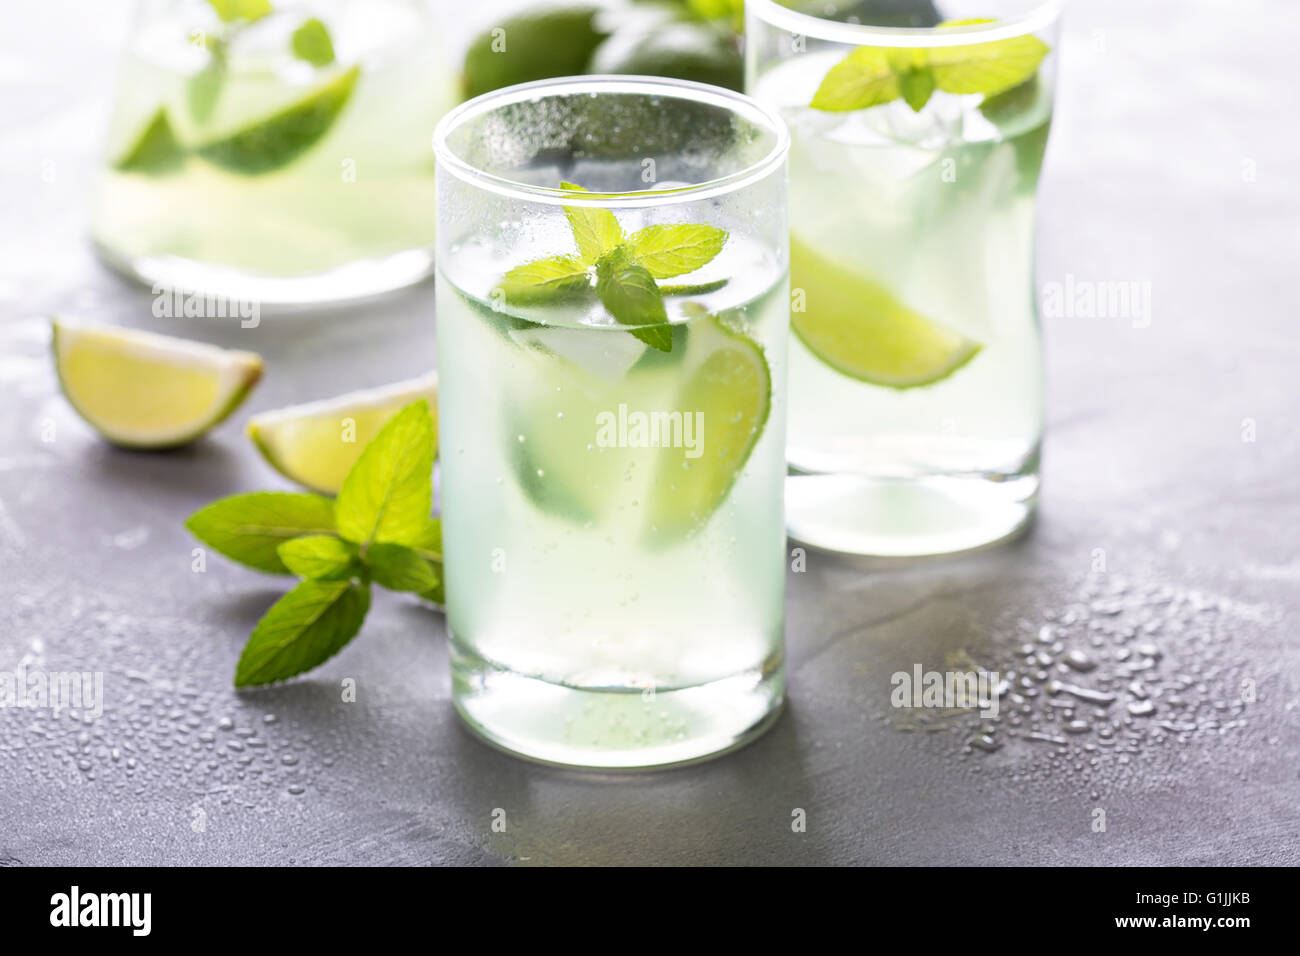 Fresh lemonade with mint and limes - Stock Image